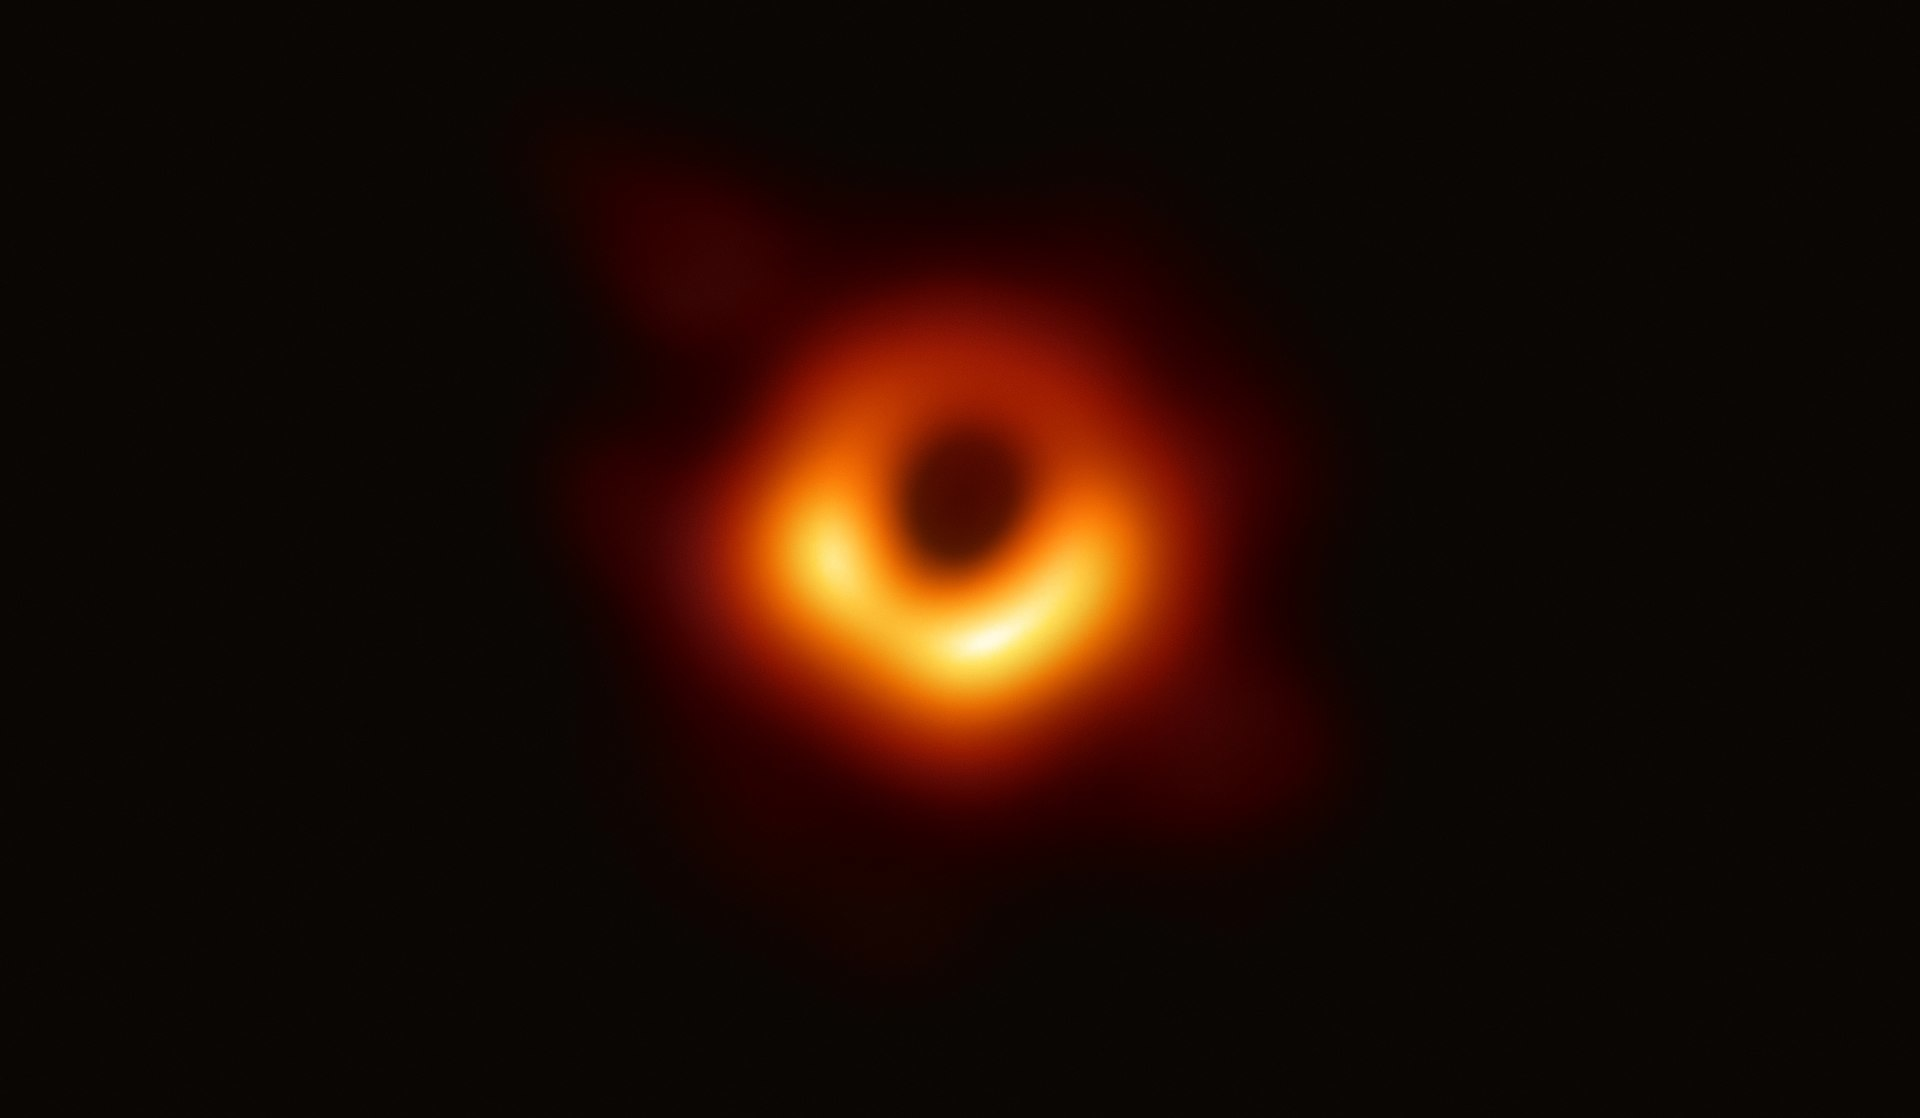 Photo courtesy of Wikimedia Commons  The first photographic image of a black hole, developed by Katie Bouman.